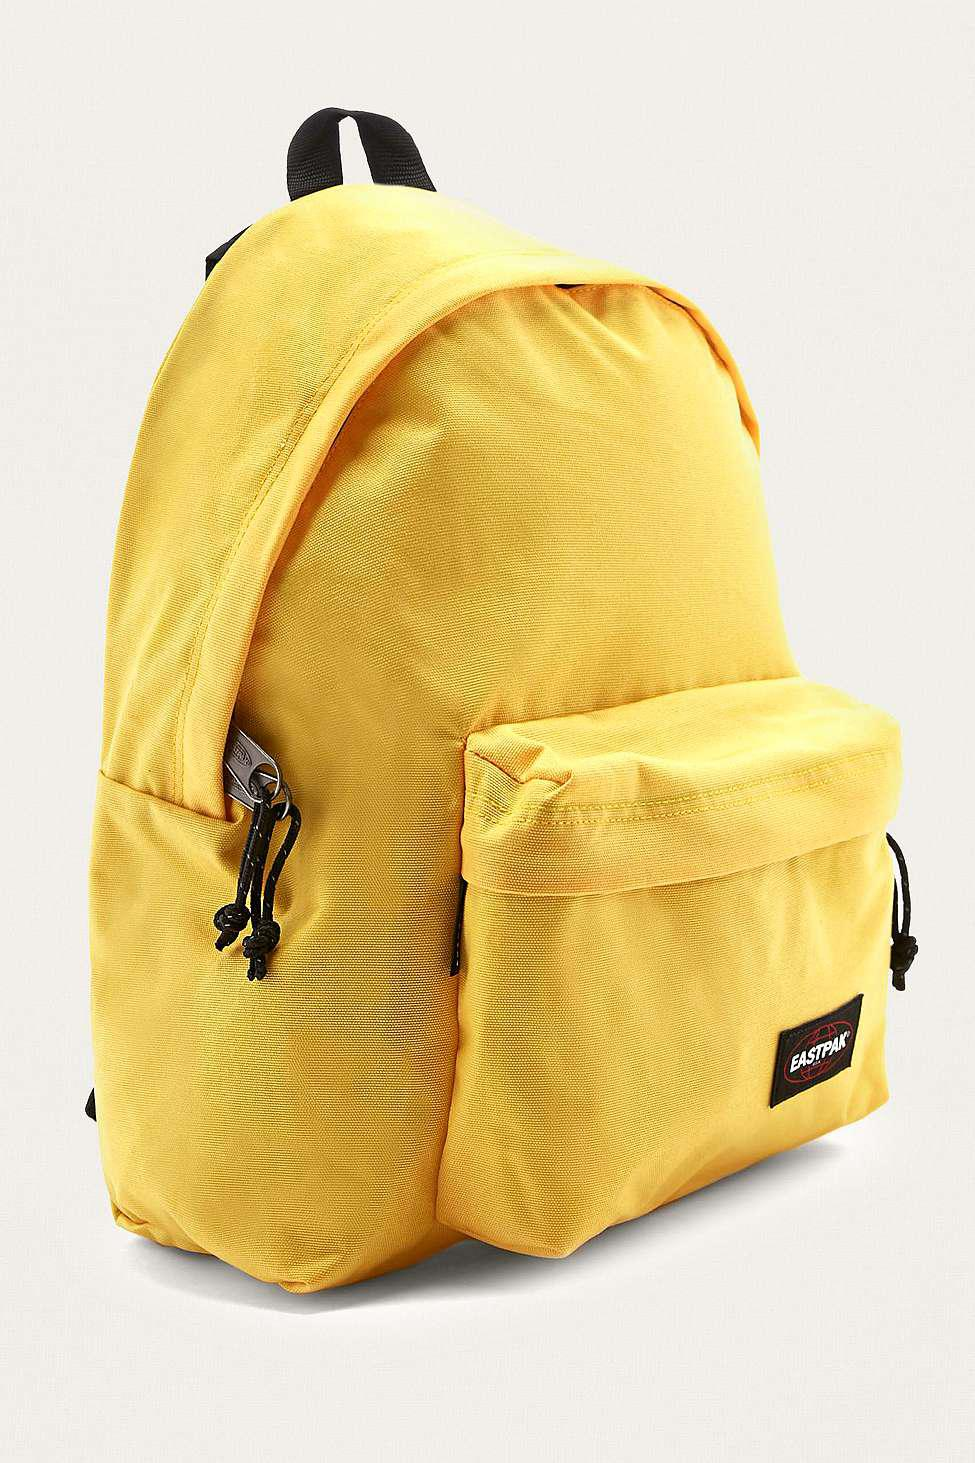 6abc10458 Eastpak Padded Pak'r Flexible Yellow Backpack - Womens All in Yellow ...